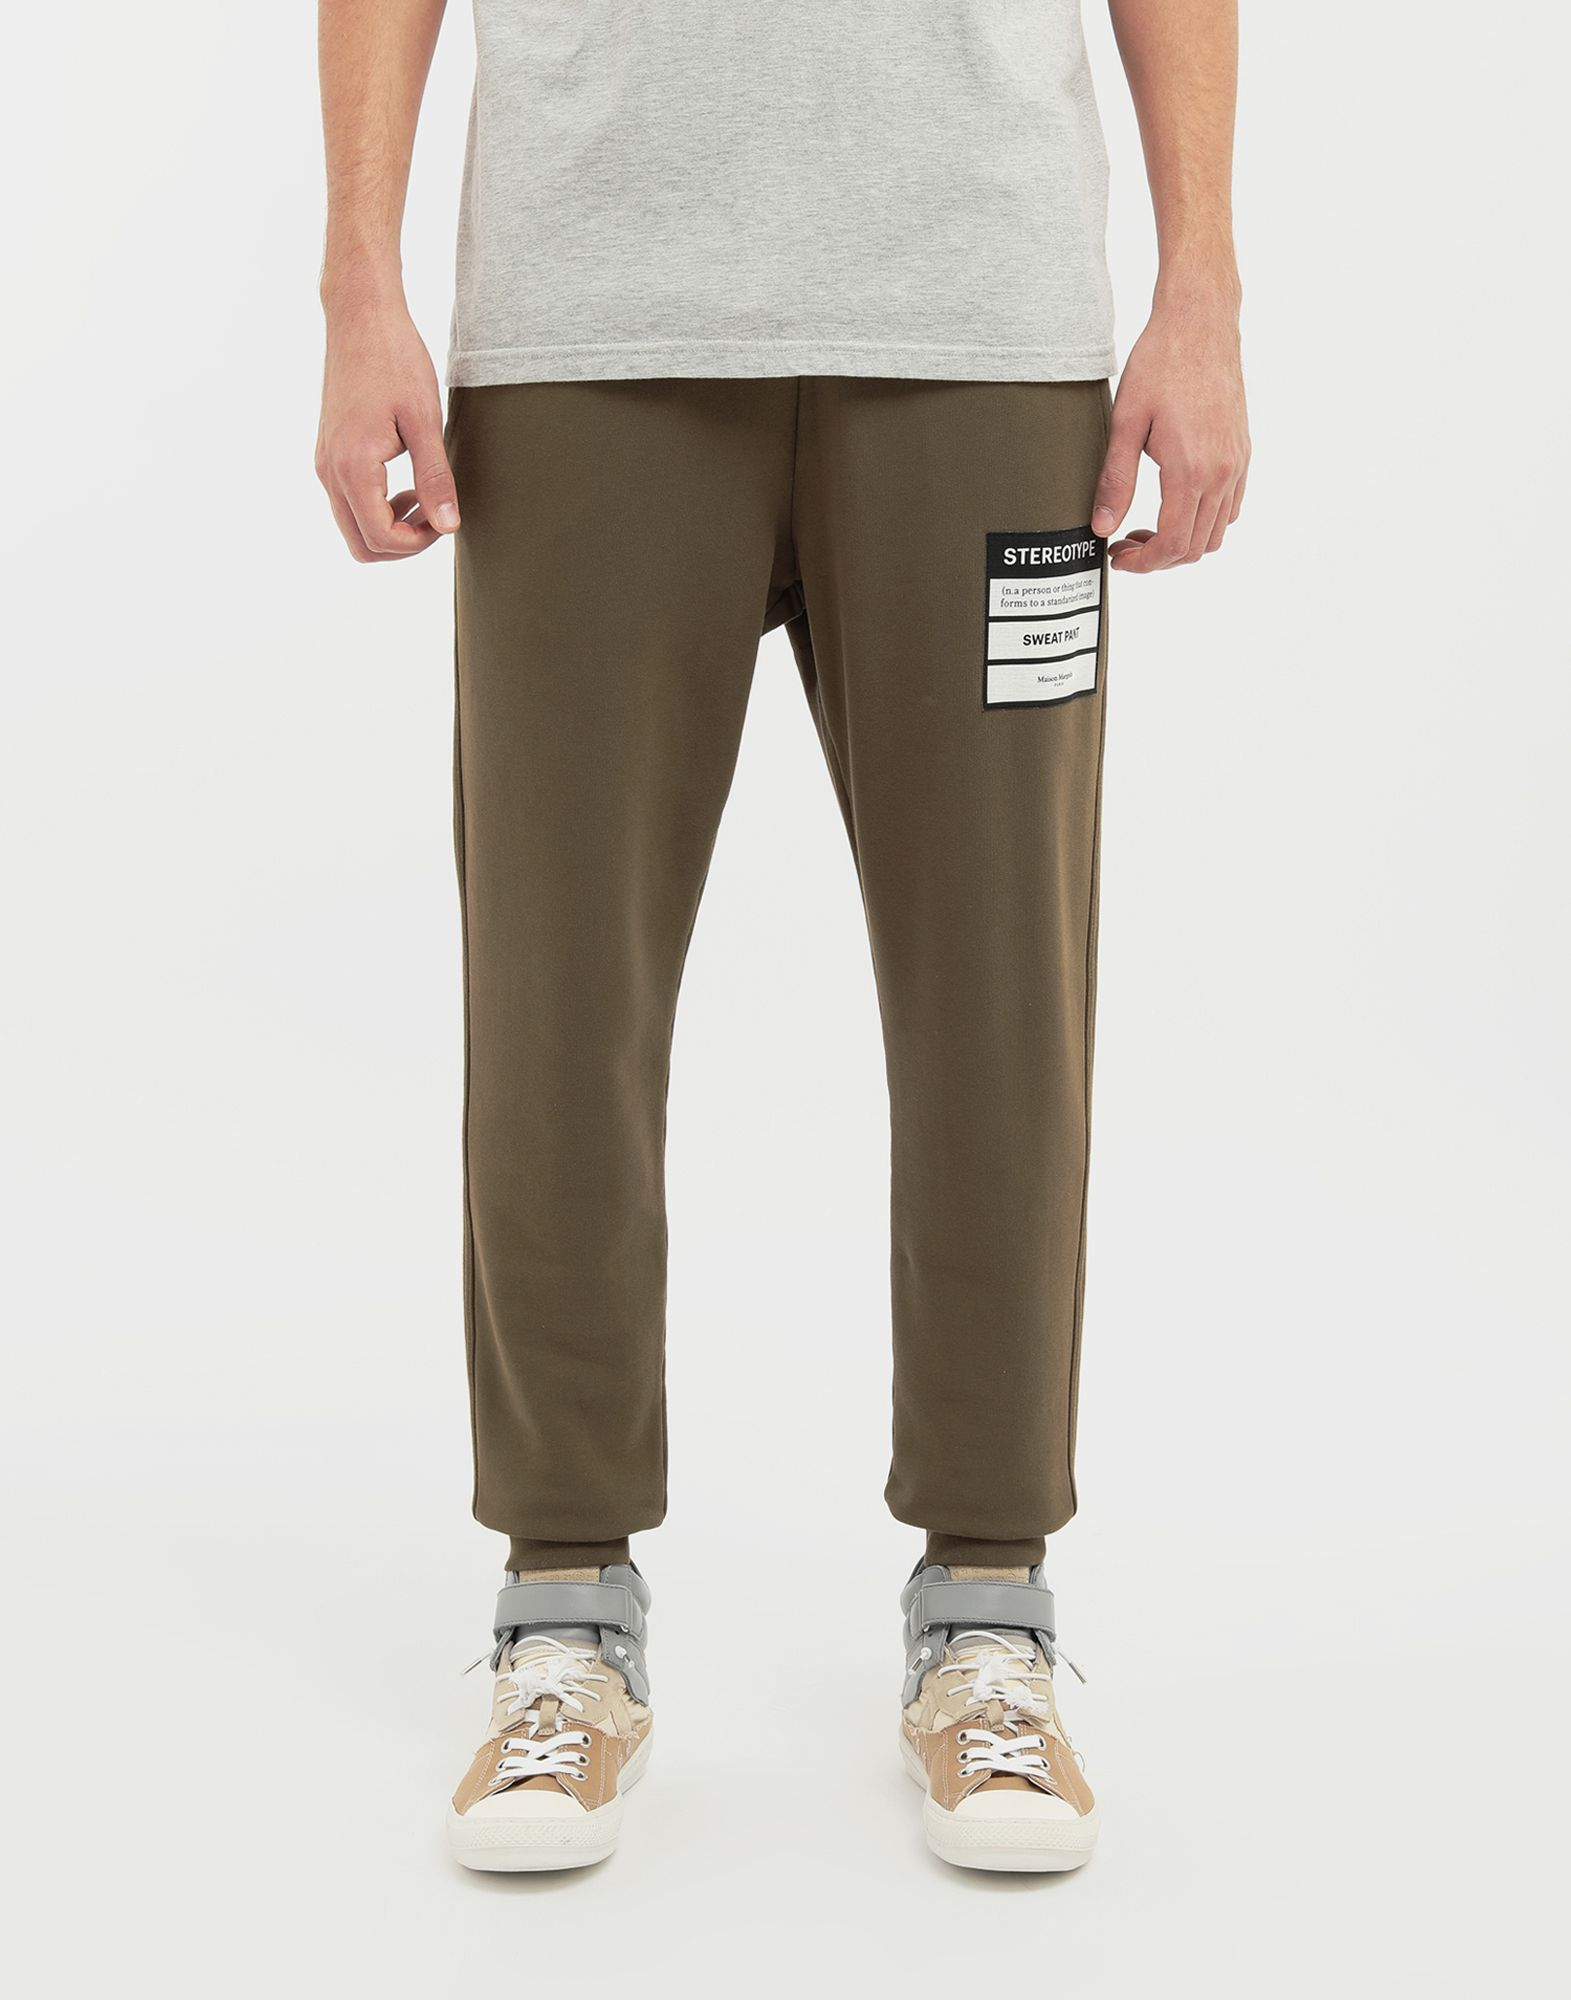 MAISON MARGIELA Stereotype jogging pants Casual pants Man r